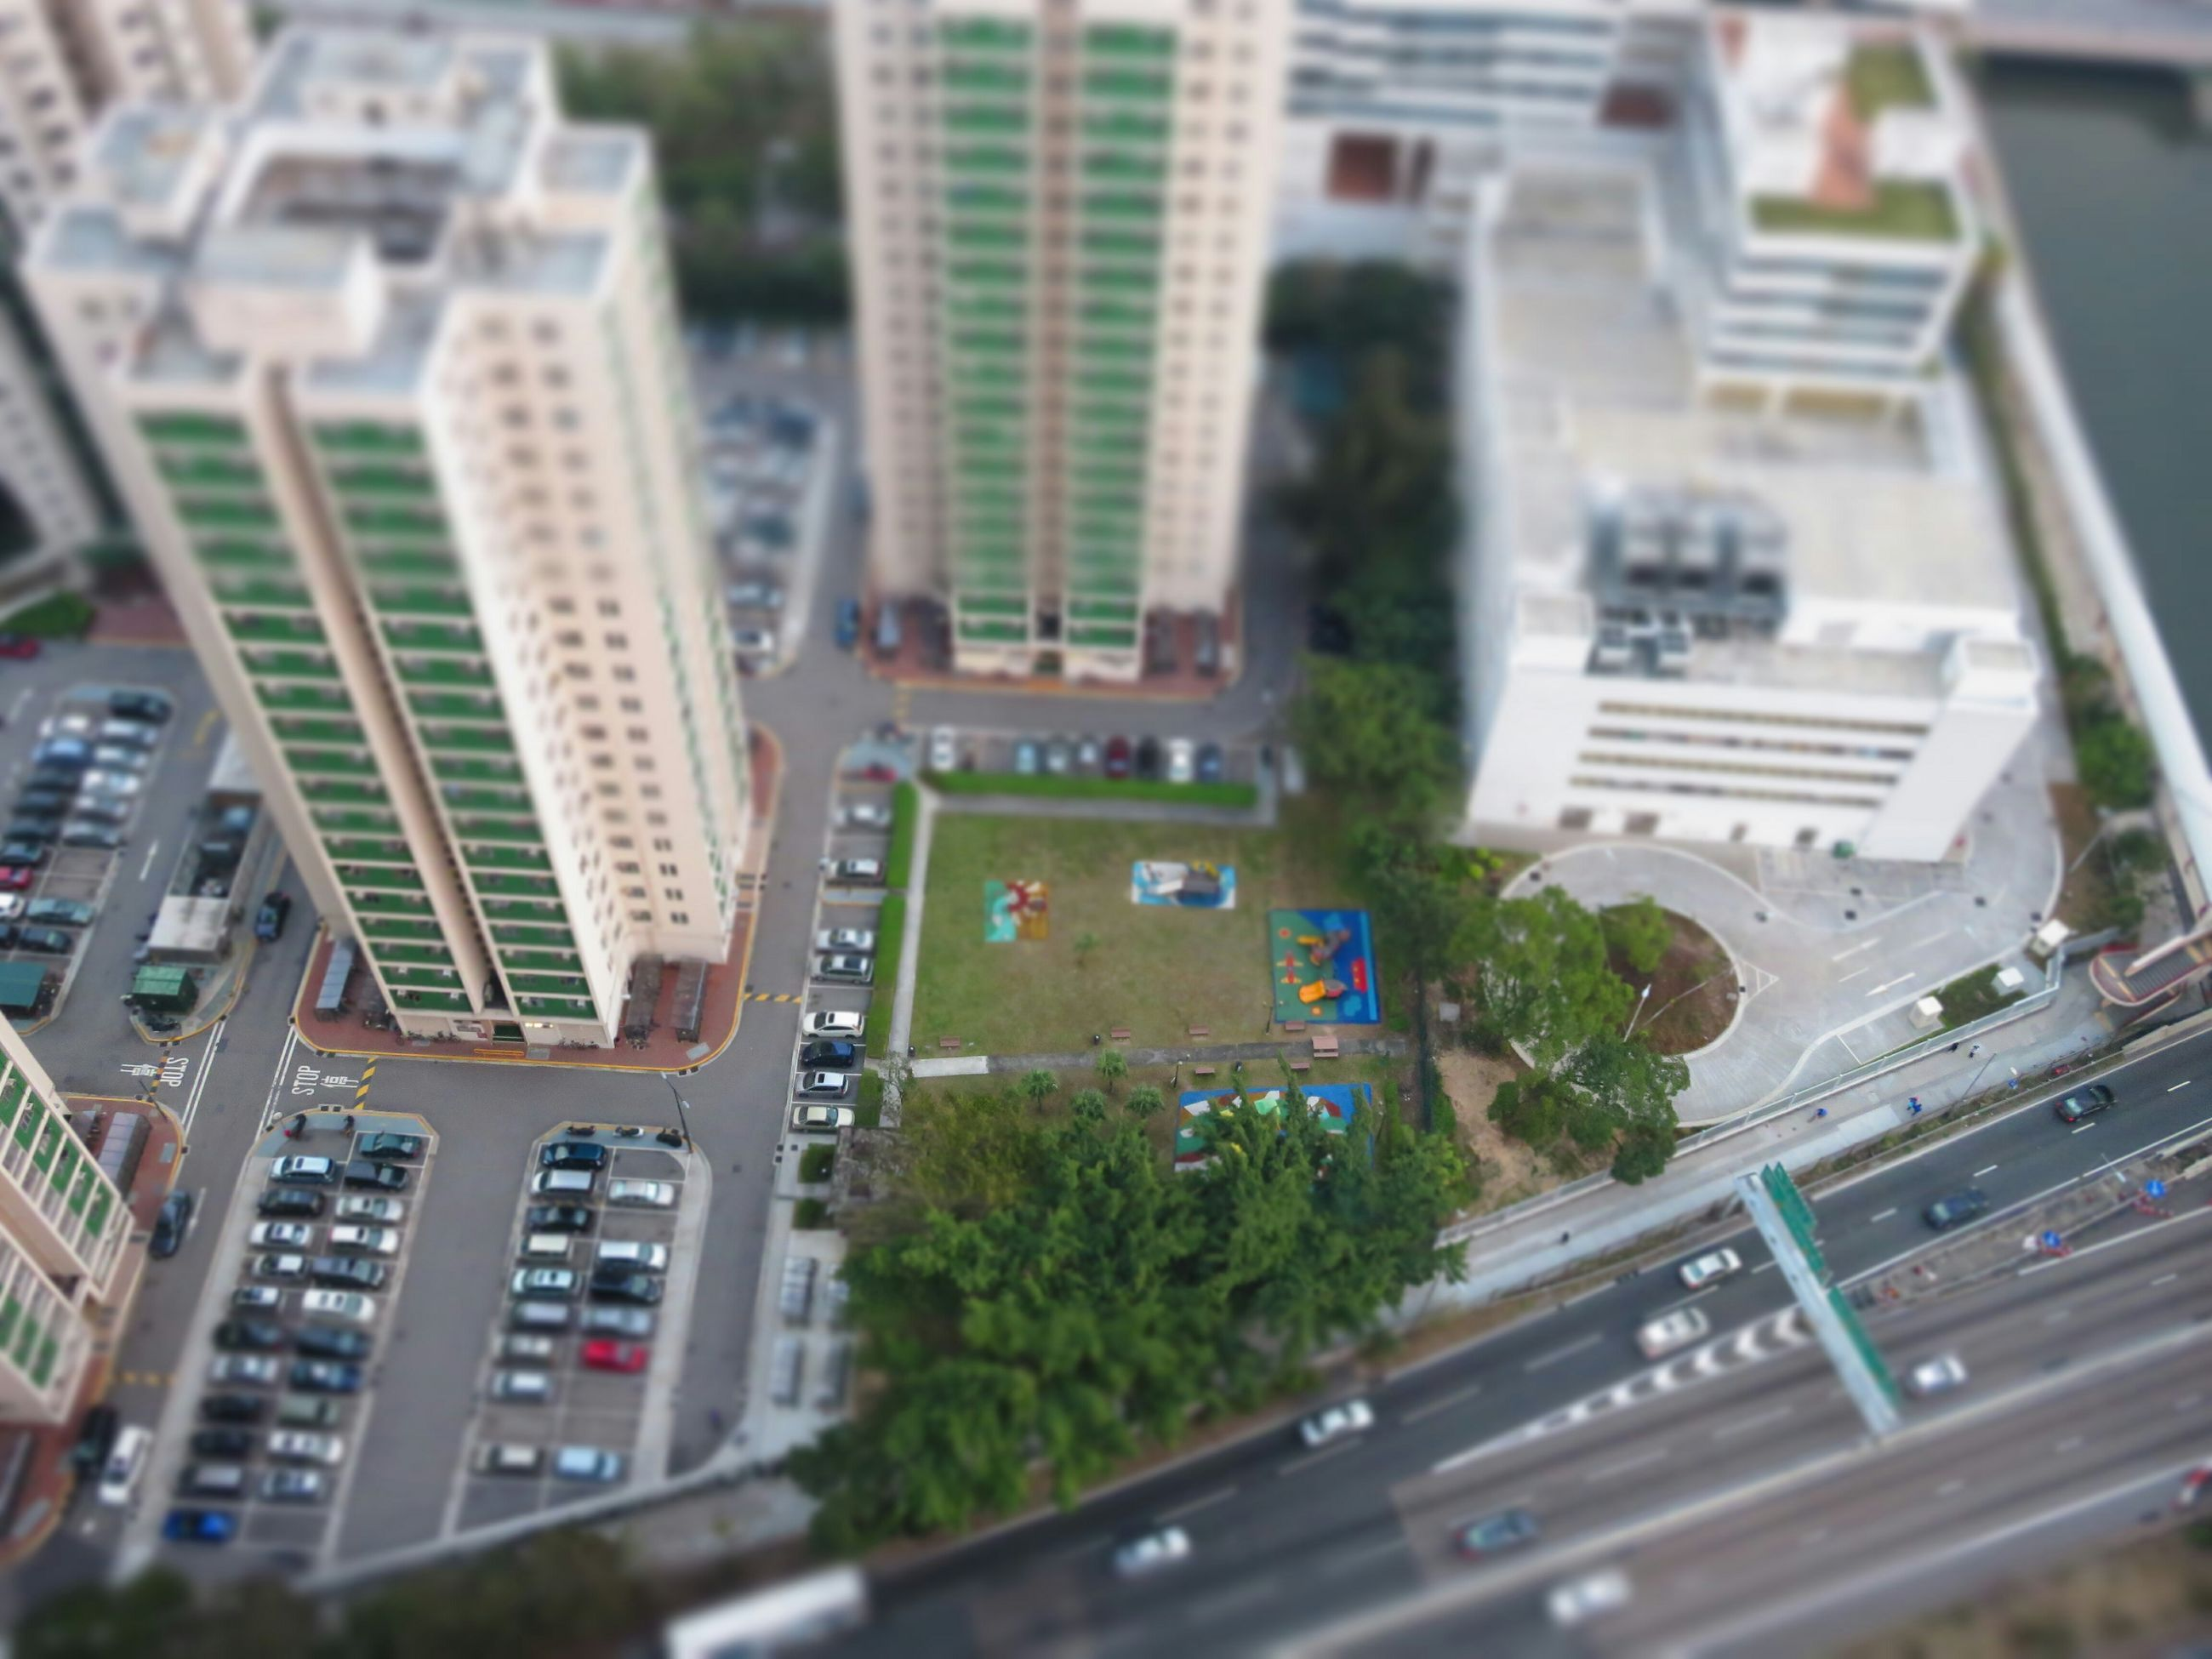 building exterior, architecture, city, built structure, transportation, car, high angle view, land vehicle, road, street, mode of transport, cityscape, skyscraper, city life, office building, traffic, city street, building, residential building, day